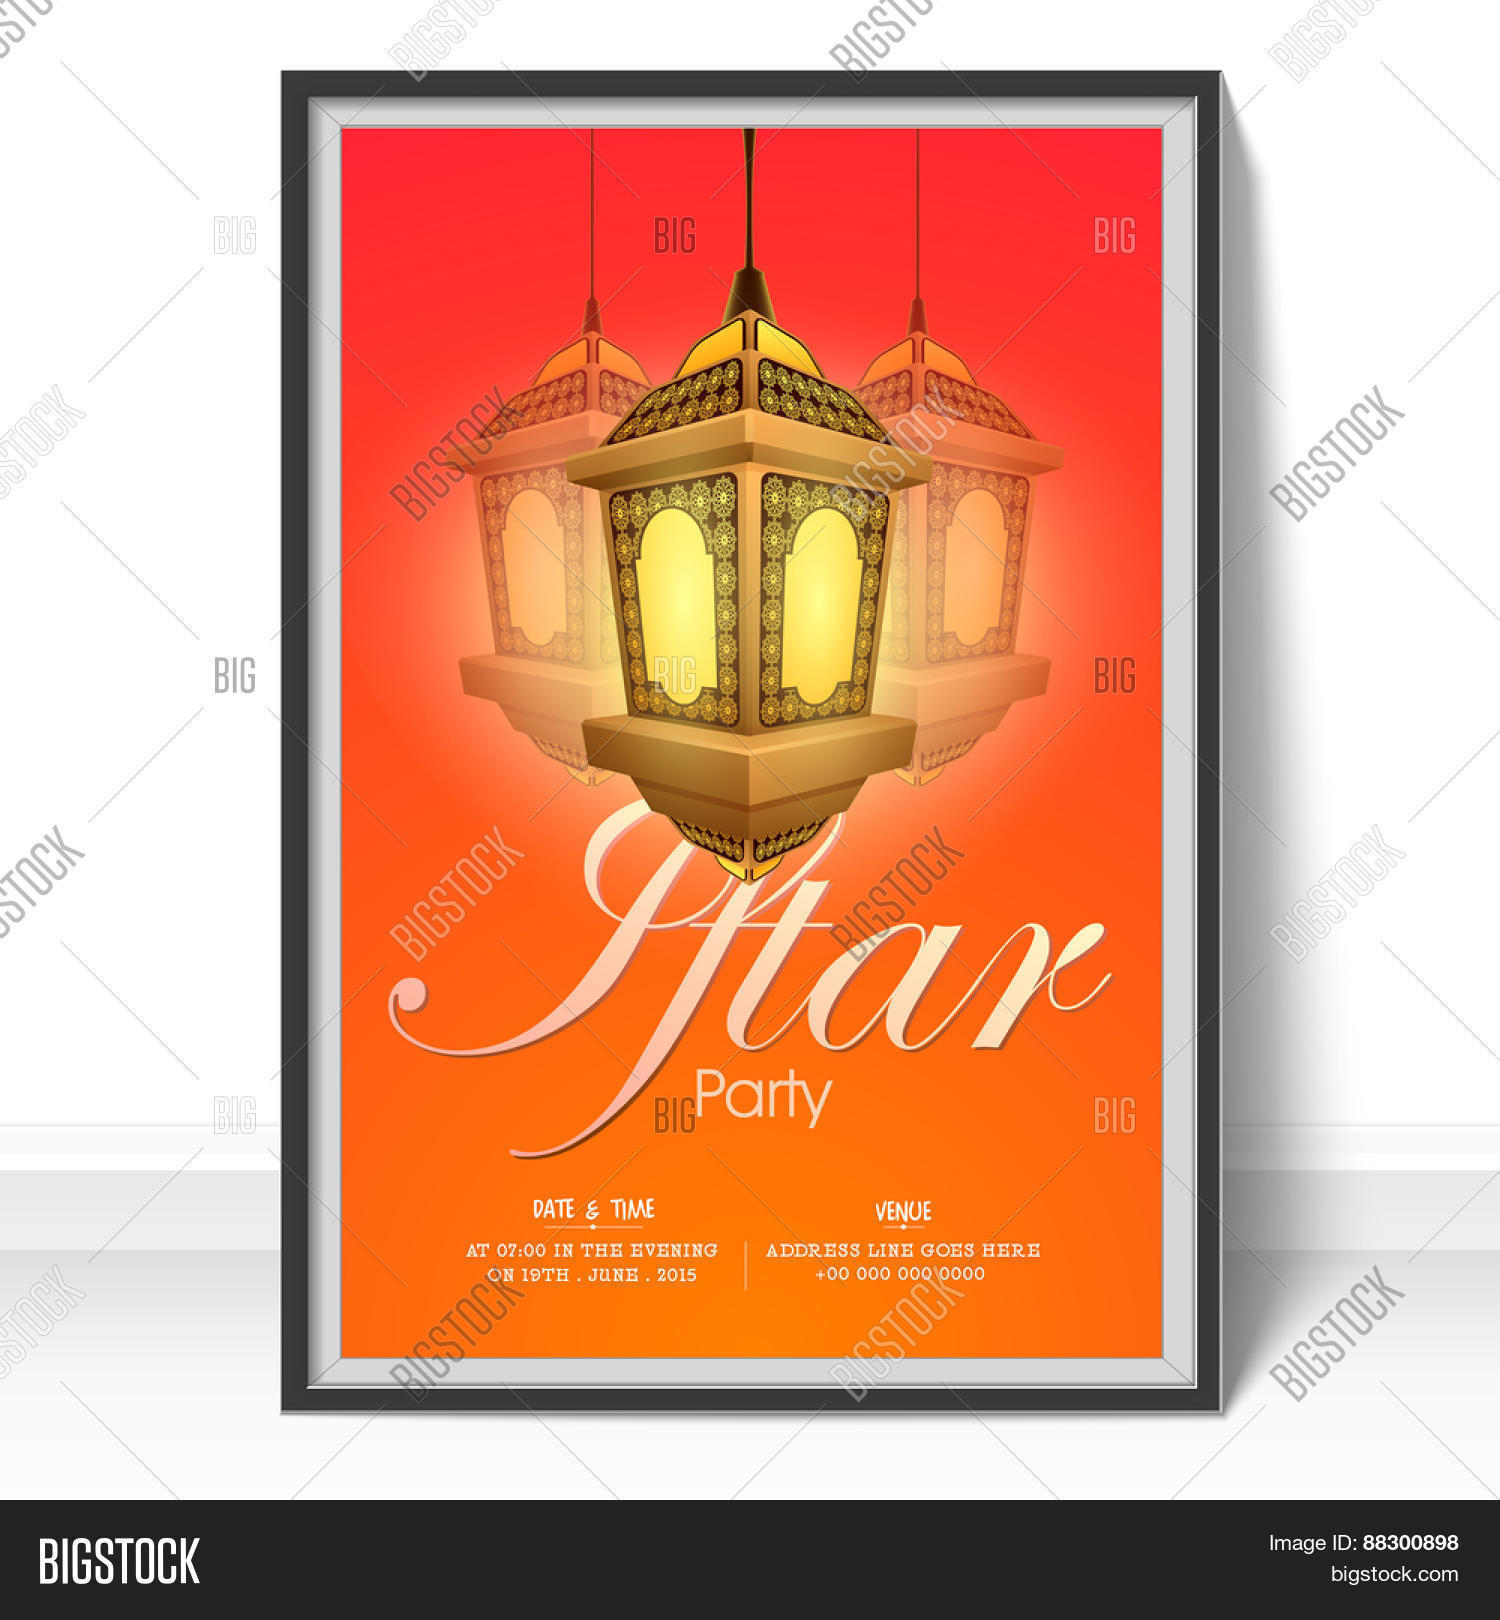 Beautiful invitation card design vector photo bigstock beautiful invitation card design for iftar party with illuminated lantern for islamic holy month of prayers stopboris Images